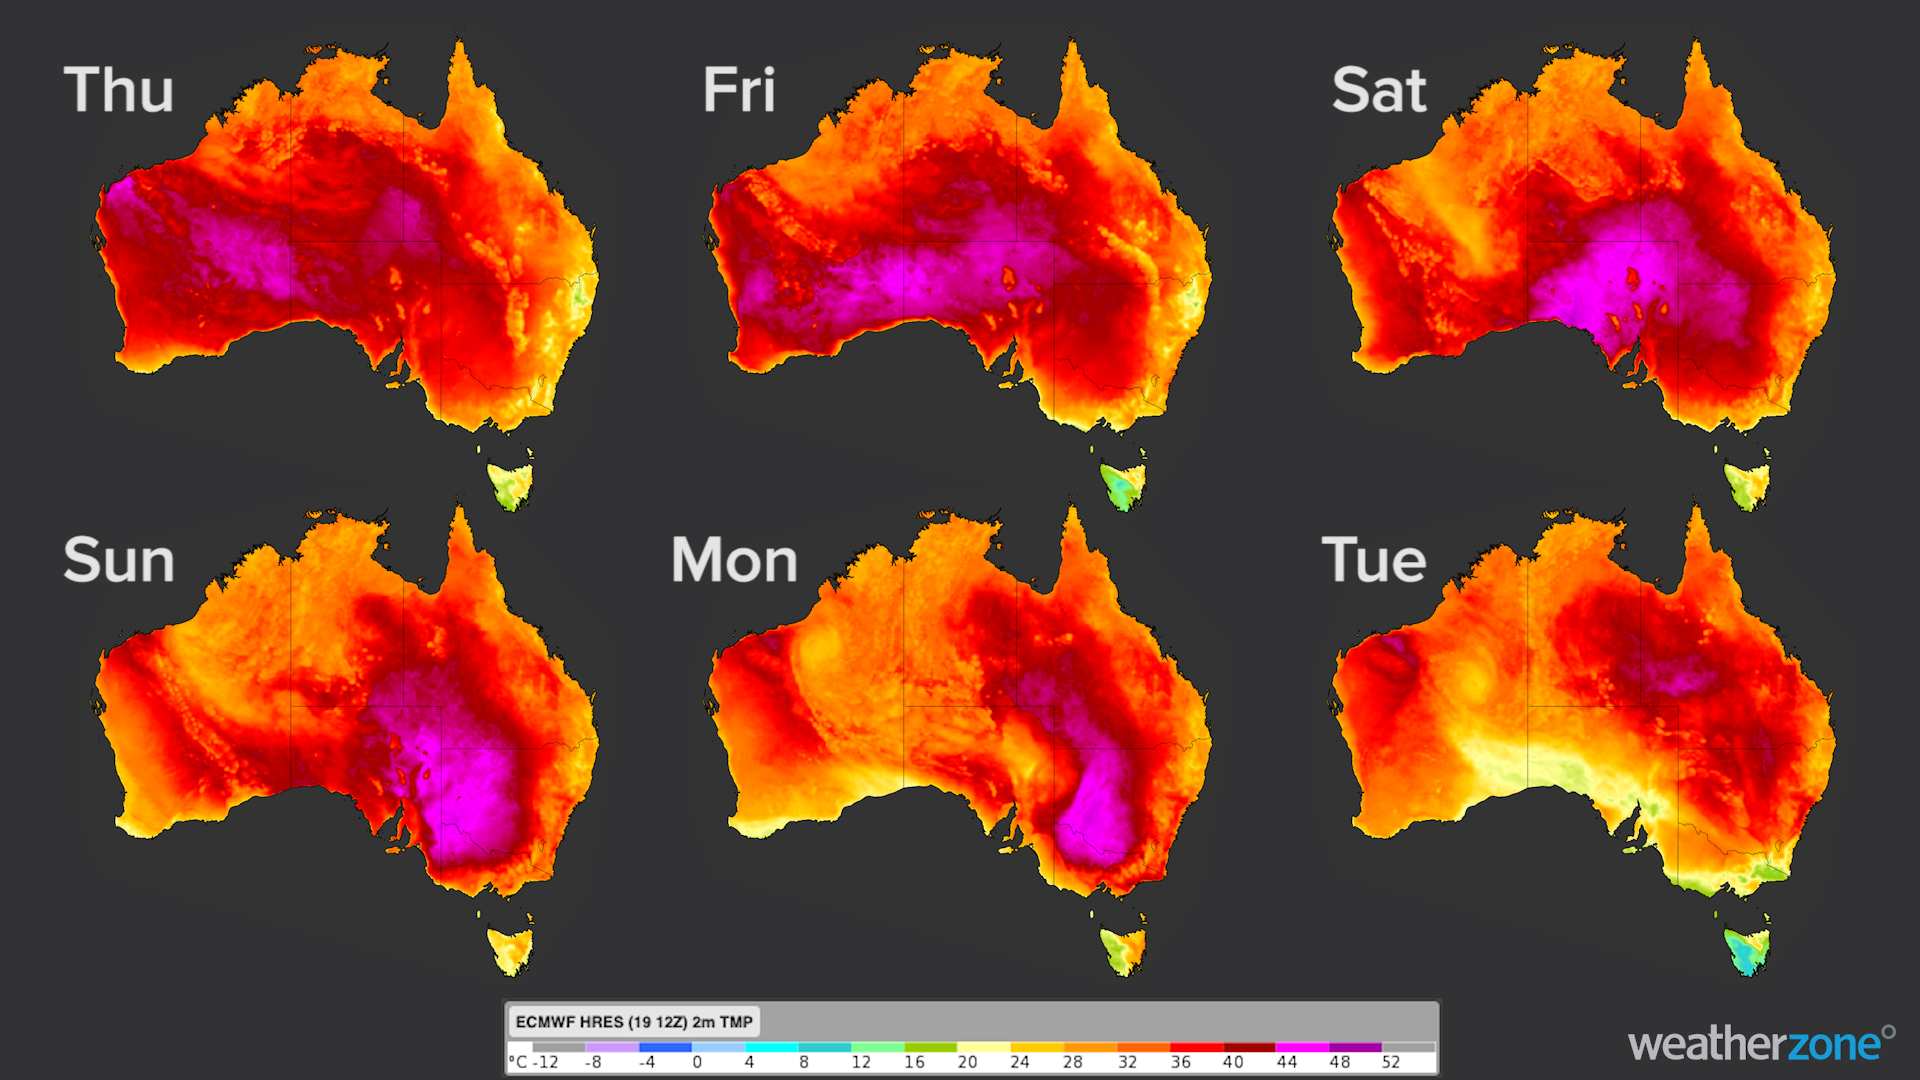 Severe heatwave intensifies for south eastern states